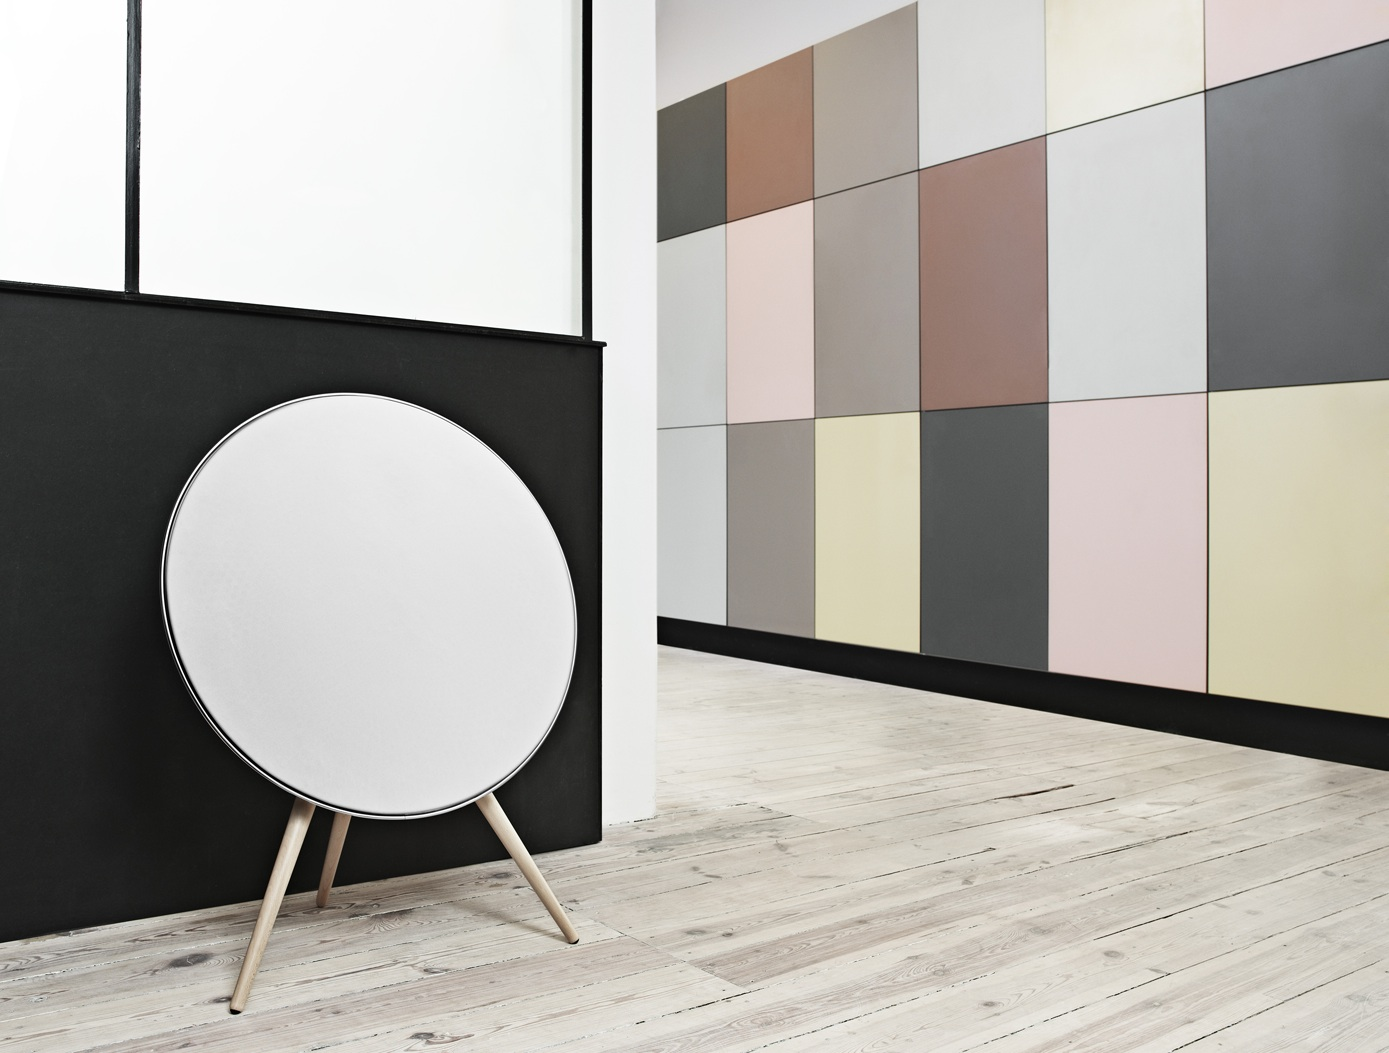 bang olufsen beoplay a9 lautsprecher wie ein satellit. Black Bedroom Furniture Sets. Home Design Ideas